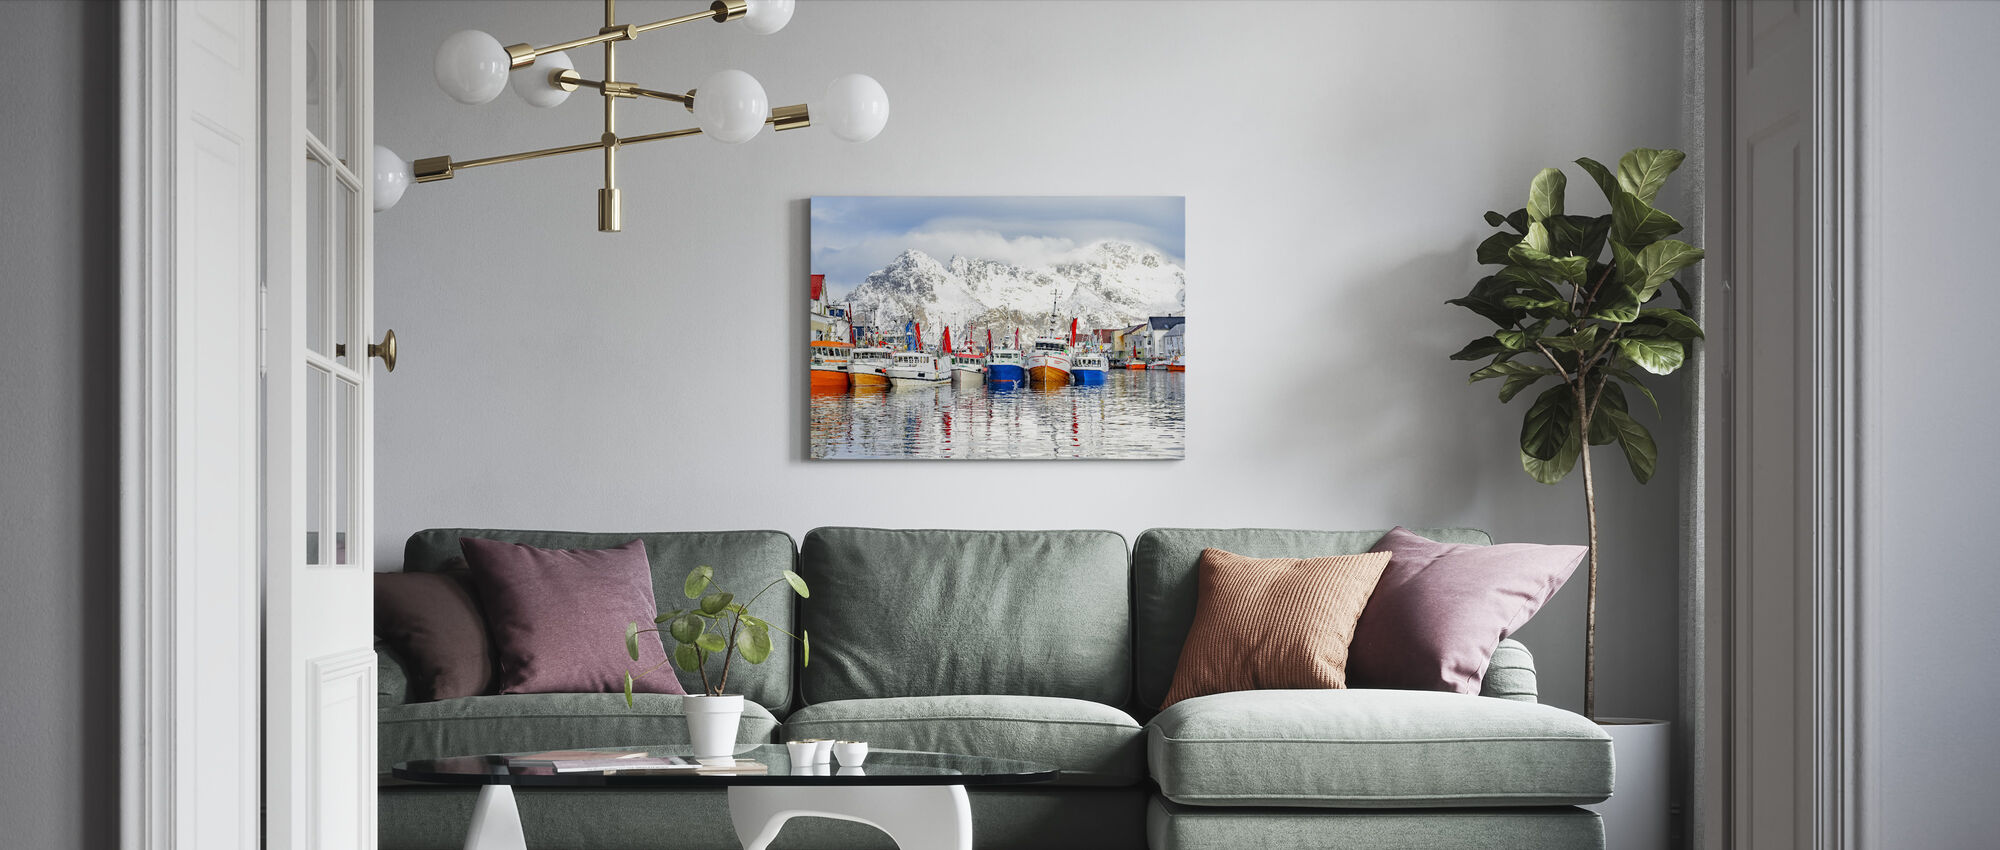 Fishing Boats in Henningsvaer - Canvas print - Living Room